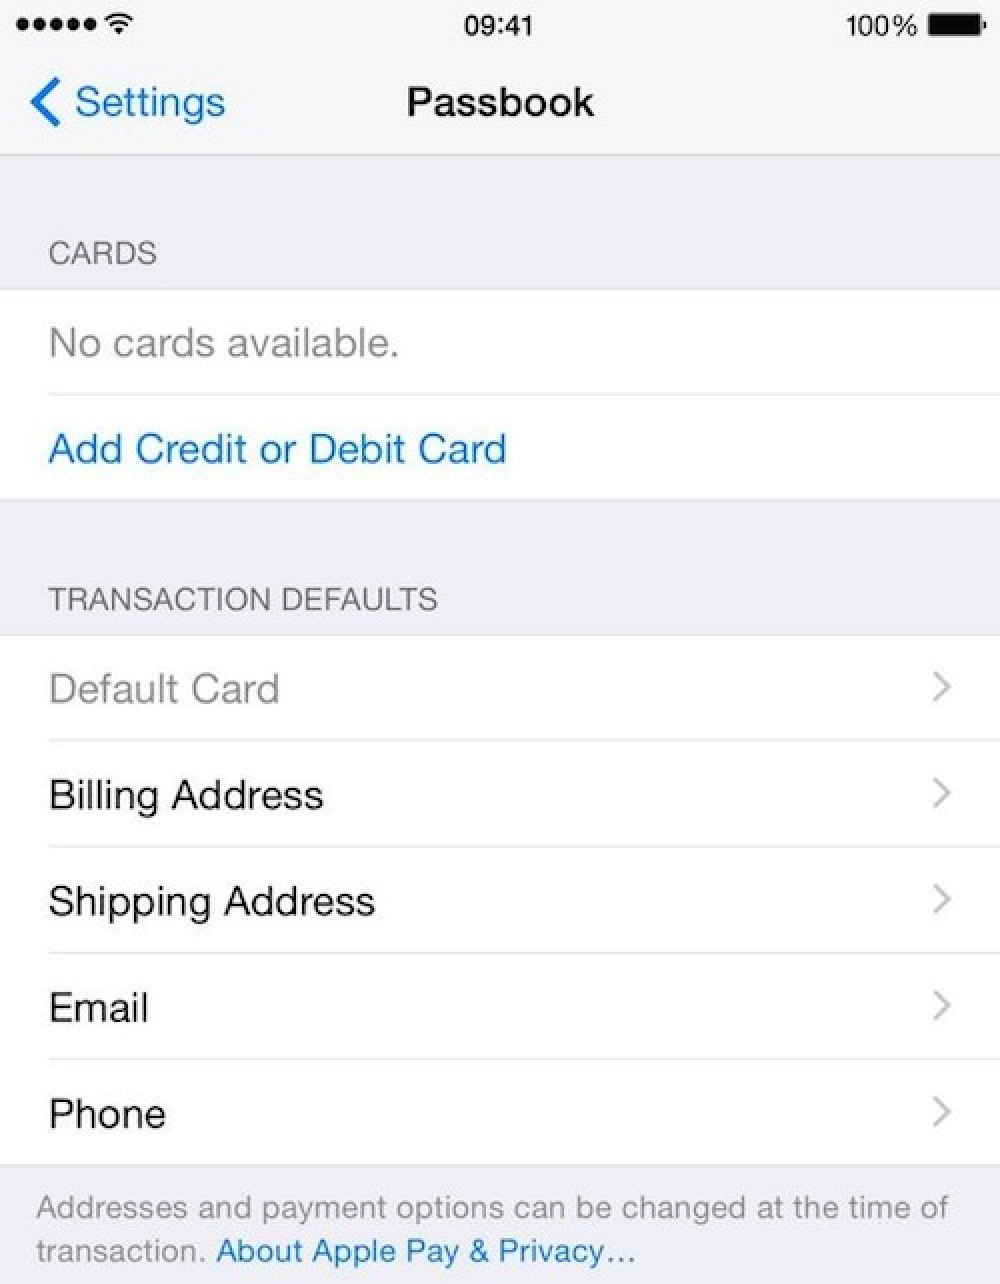 ios 81 carries hidden settings for apple pay references touch id support for ipad mac rumors